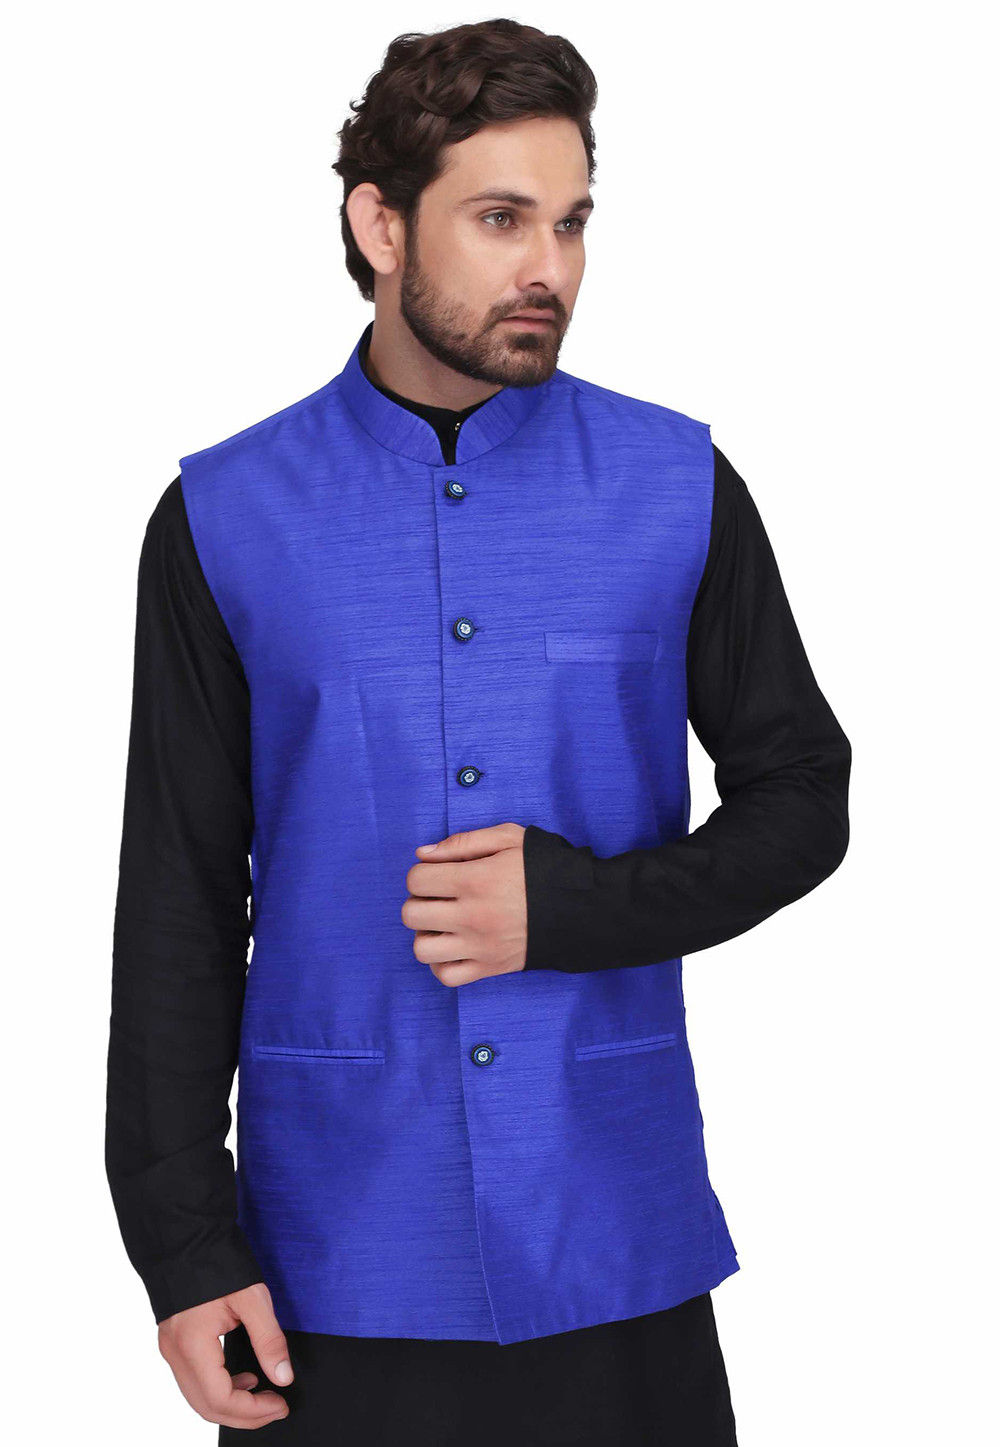 Solid Color Dupion Silk Nehru Jacket in Indigo Blue